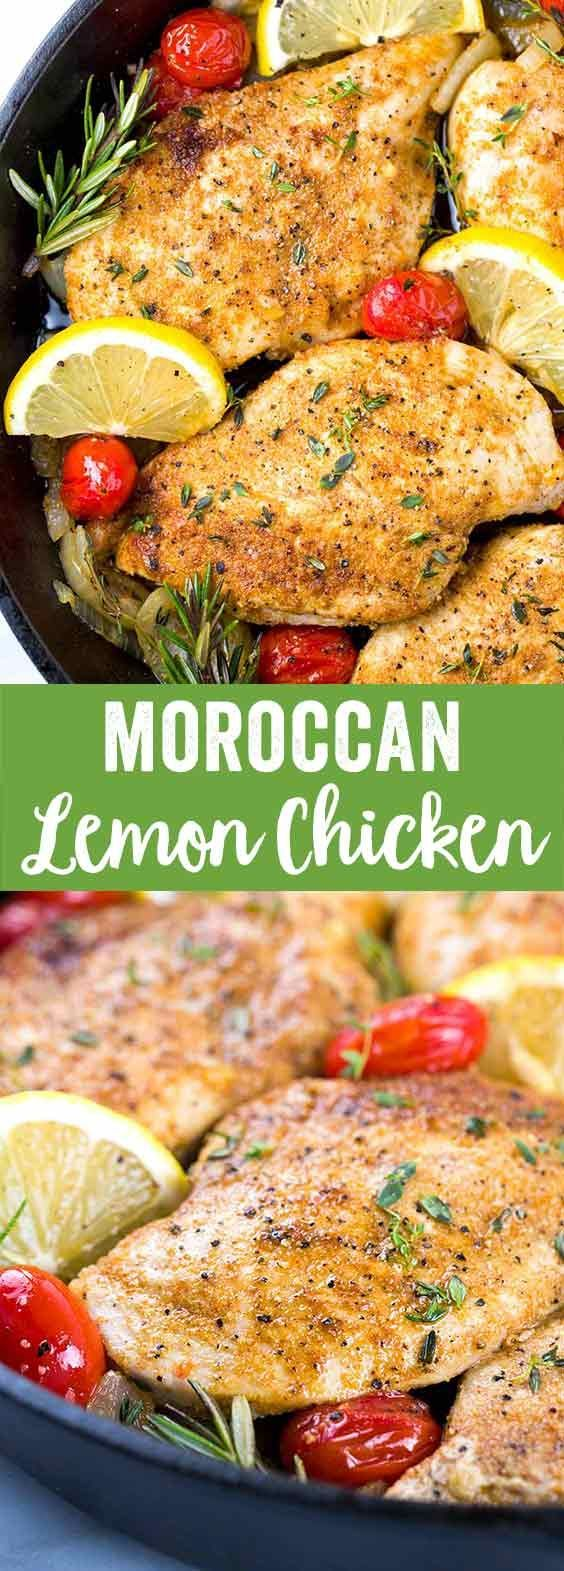 Moroccan Lemon Chicken Recipe - A quick one pan meal seasoned with Mediterranean spices, herbs, and lemon slices. via @foodiegavin